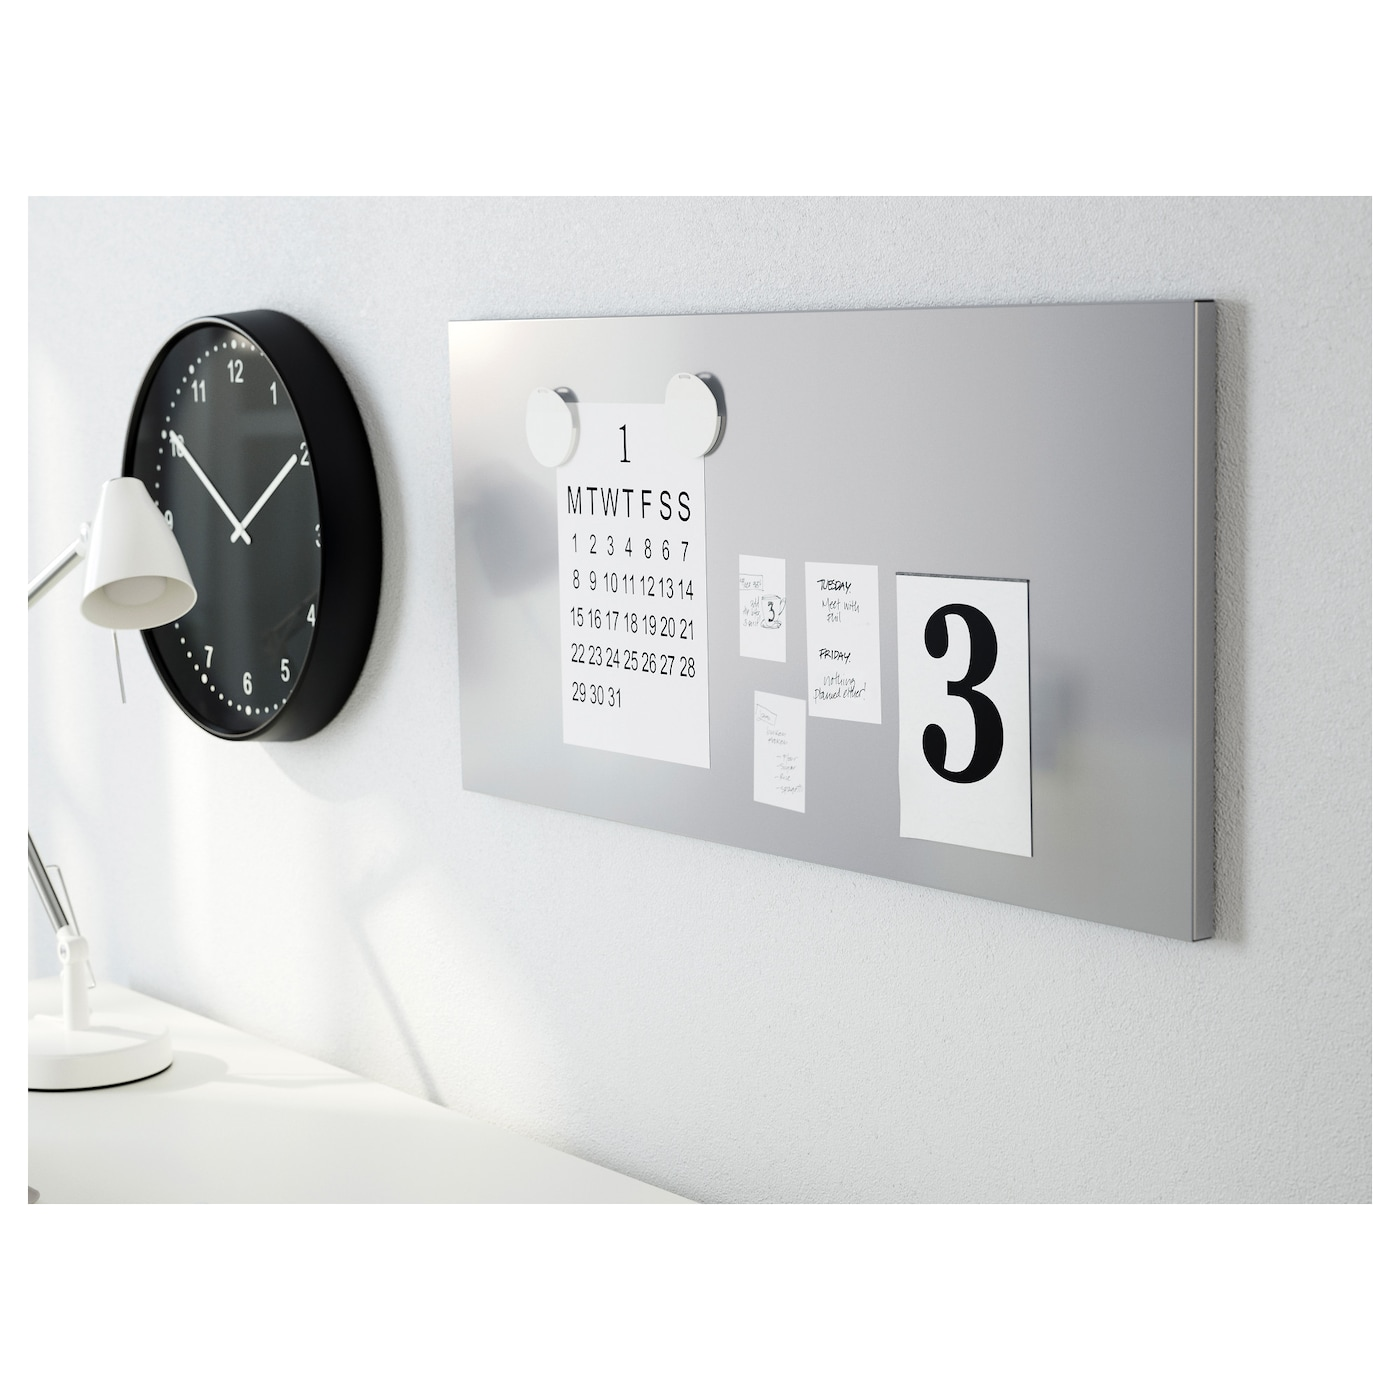 spontan magnetic board silver colour 37x78 cm ikea. Black Bedroom Furniture Sets. Home Design Ideas